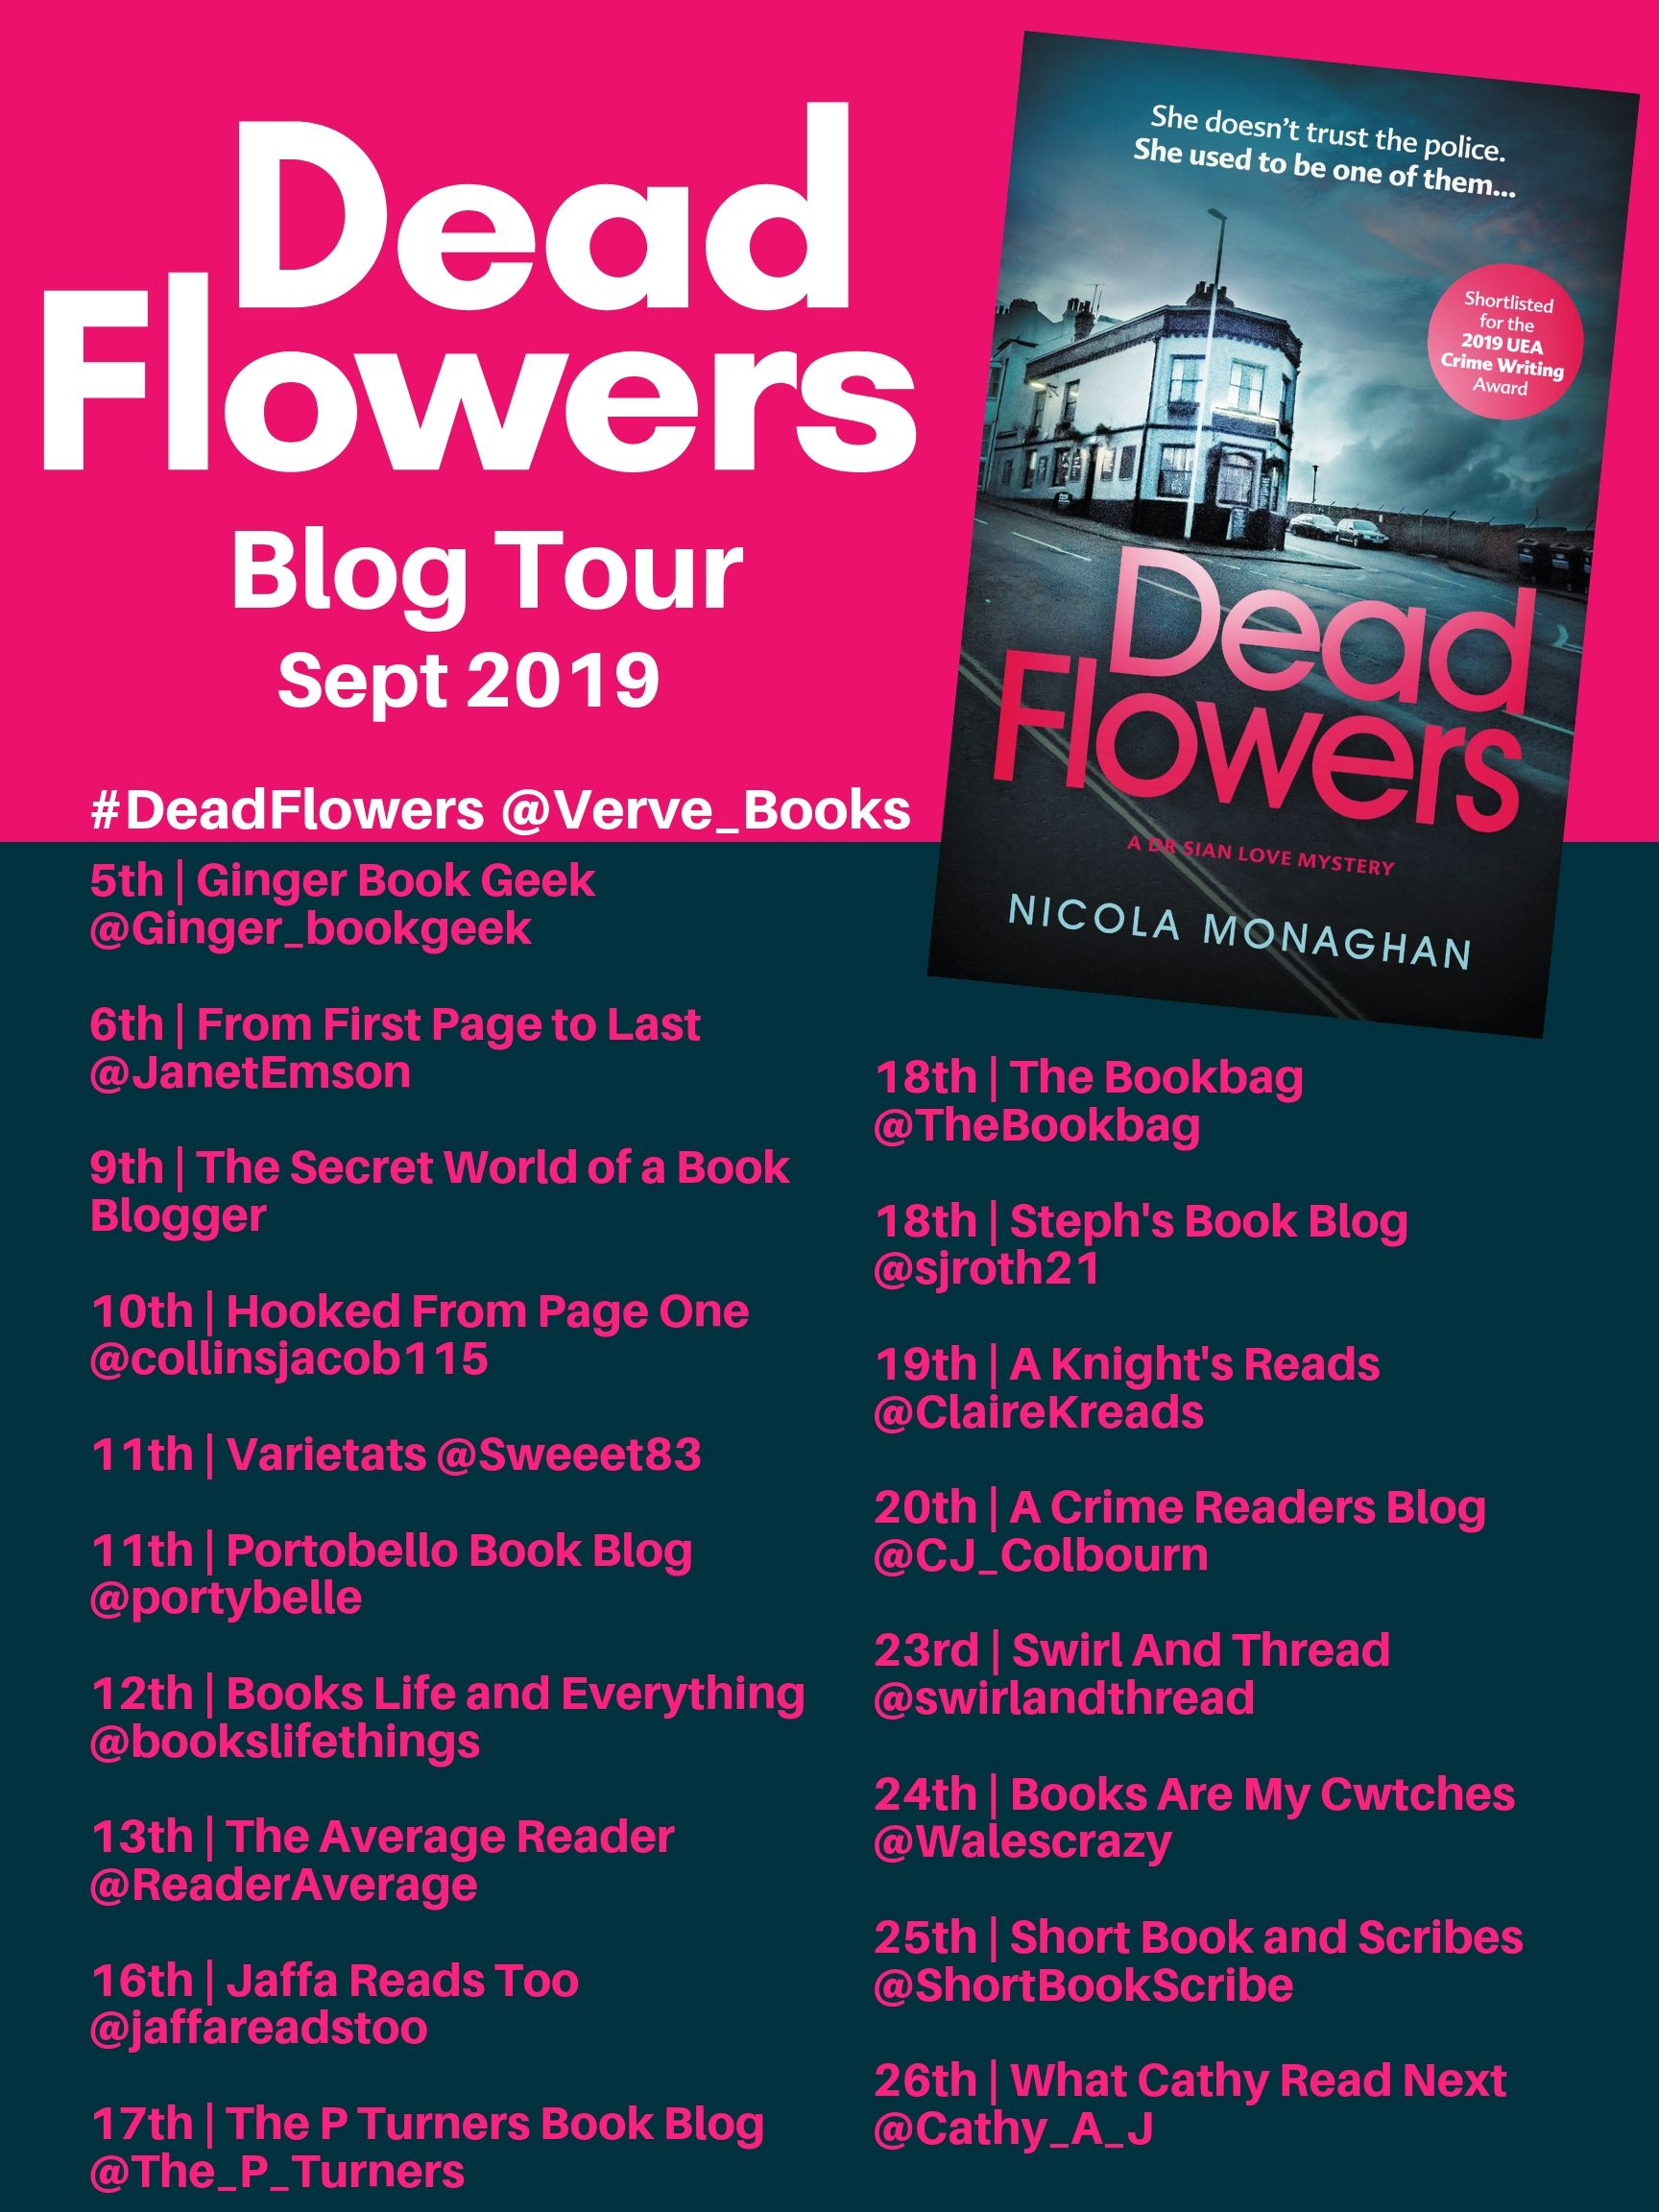 DEAD FLOWERS BLOG TOUR- CORRECTED